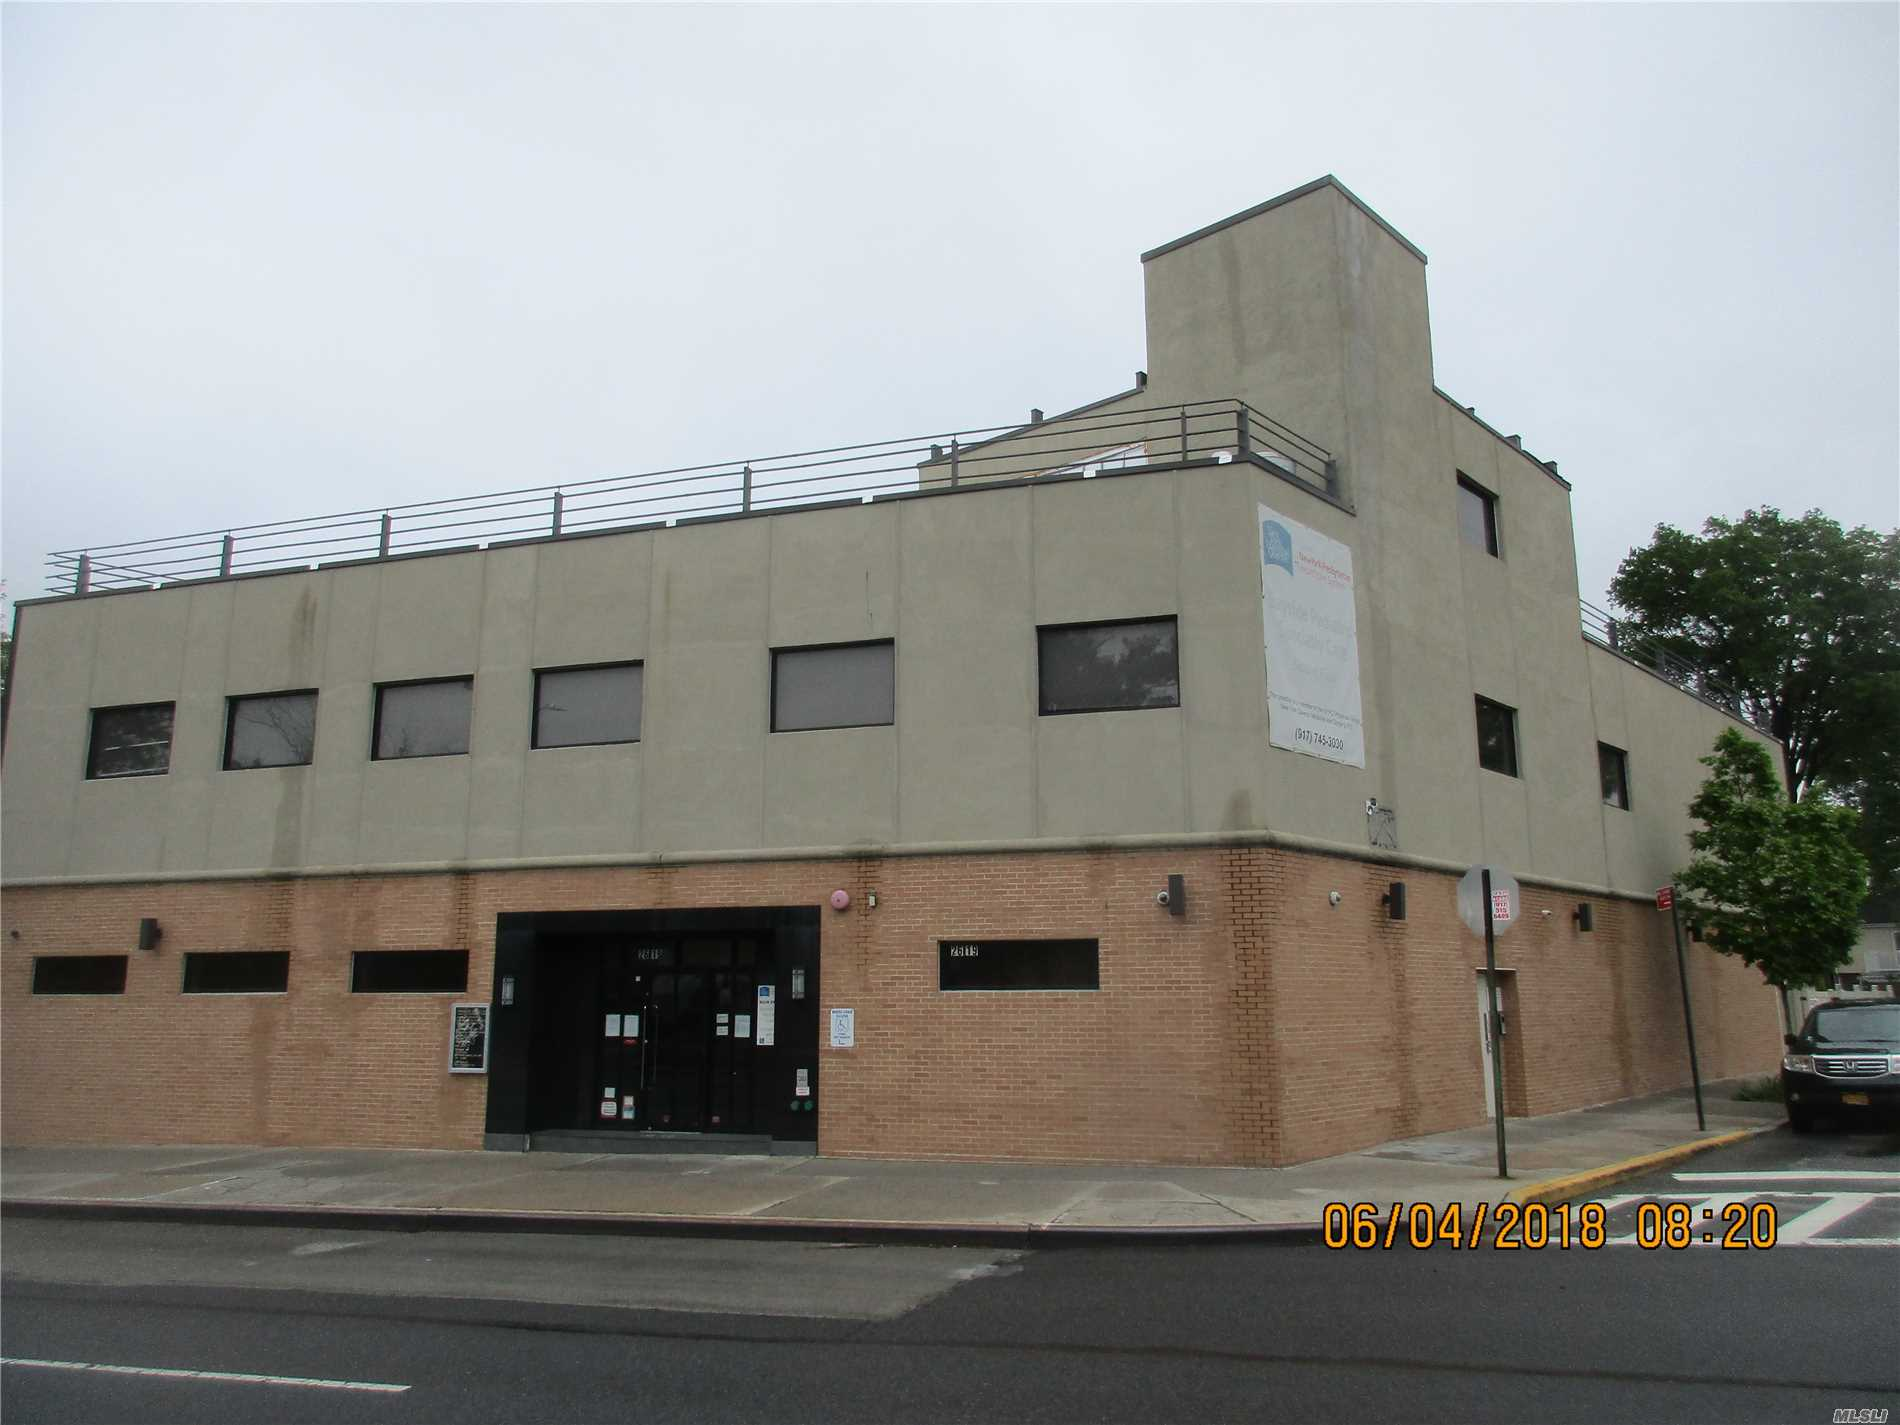 This Is A Huge Medical Building In The Heart Of Bayside/Flushing With Private Parking For 17 Cars. Completely Set Up As Medical/Hospital Facility. 1st And 2nd Floor And Basement Set Up For Medical/Offices Etc. State Of The Art Geothermal Heating And Air Conditioning Systems. Priced To Sell Permanent Cert. Of Occupancy In Process.27 Examination Rms, 10 Consultation Offices, 3Reception/Waiting+Handicapped Elevator